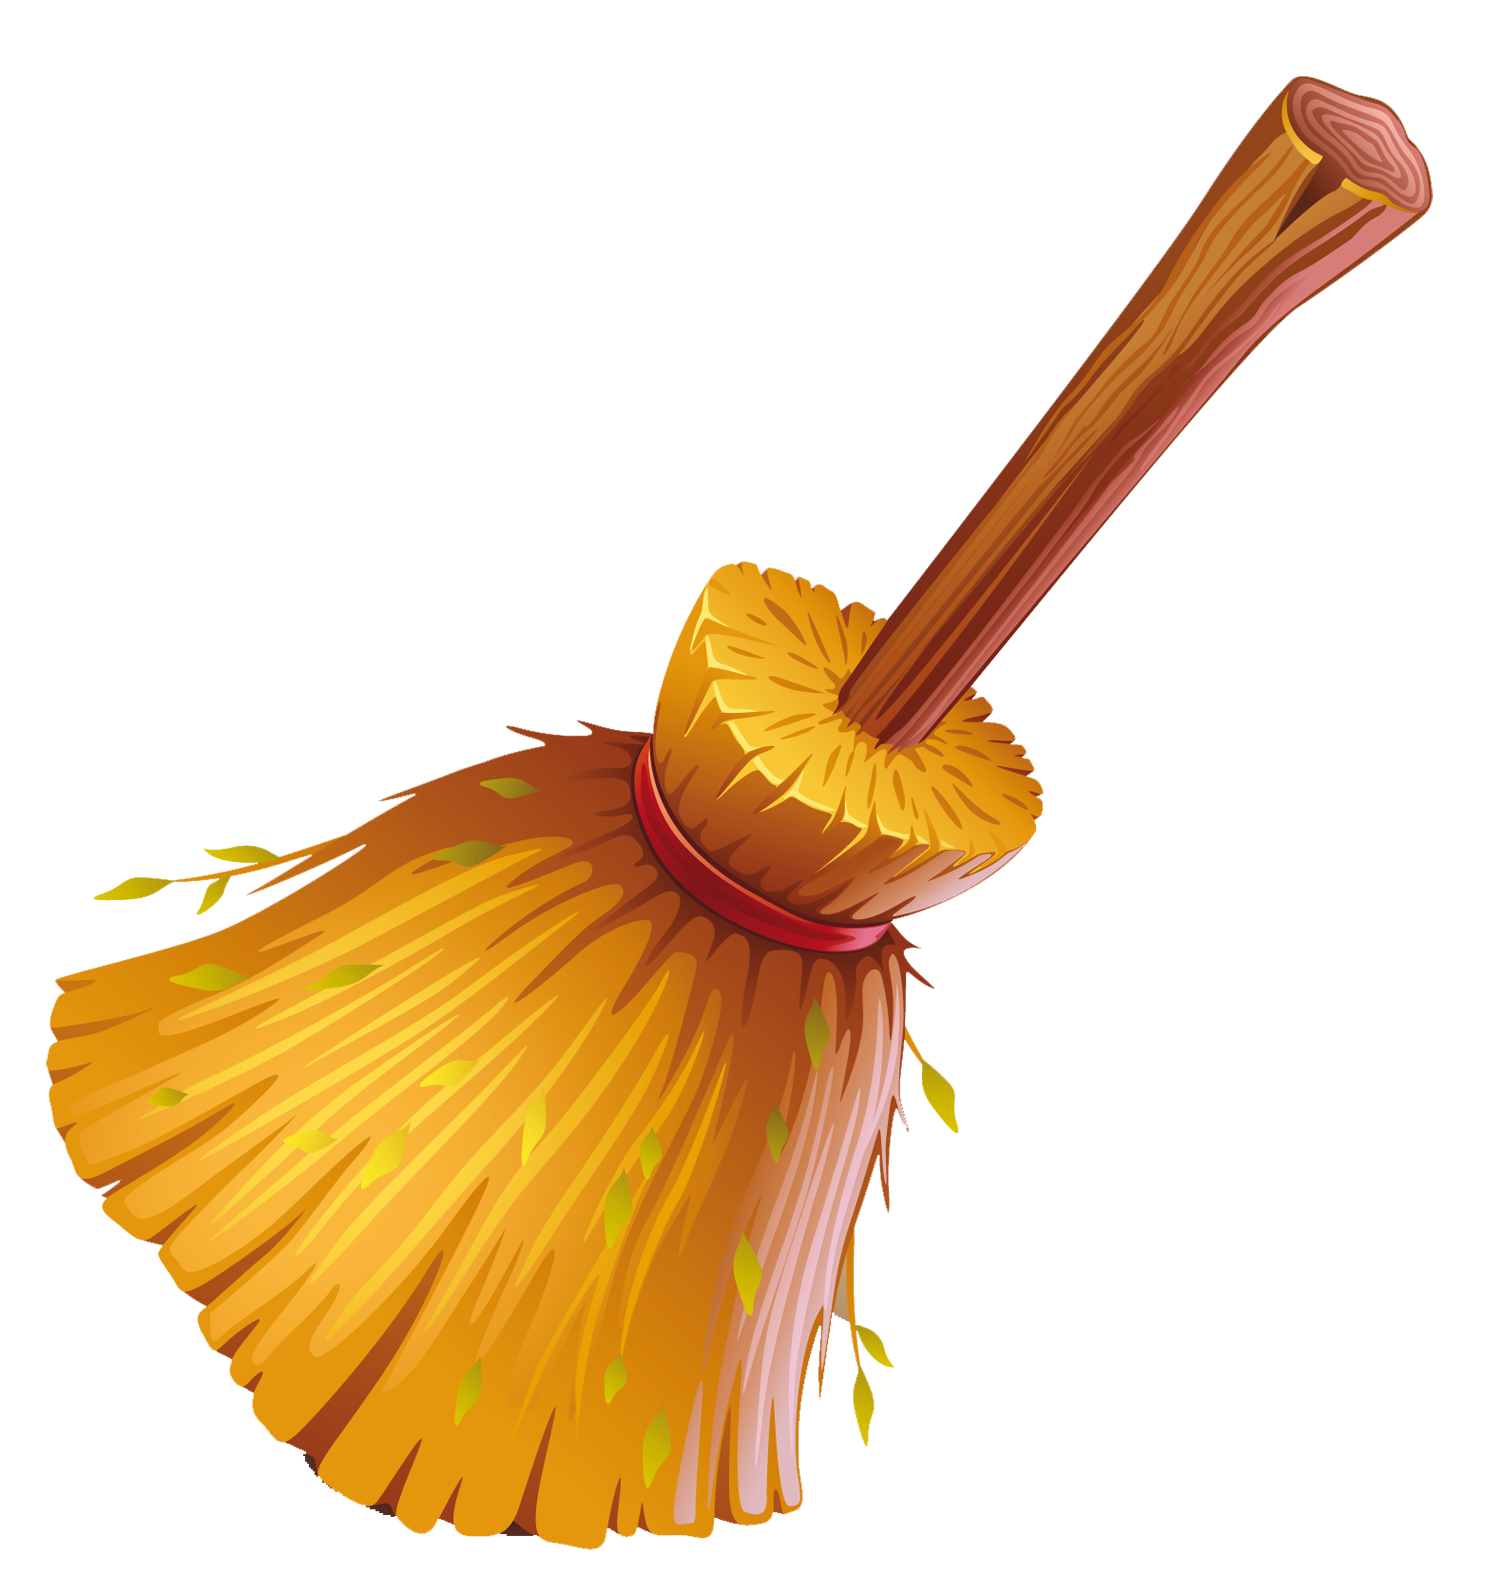 Witch on broomstick clipart.